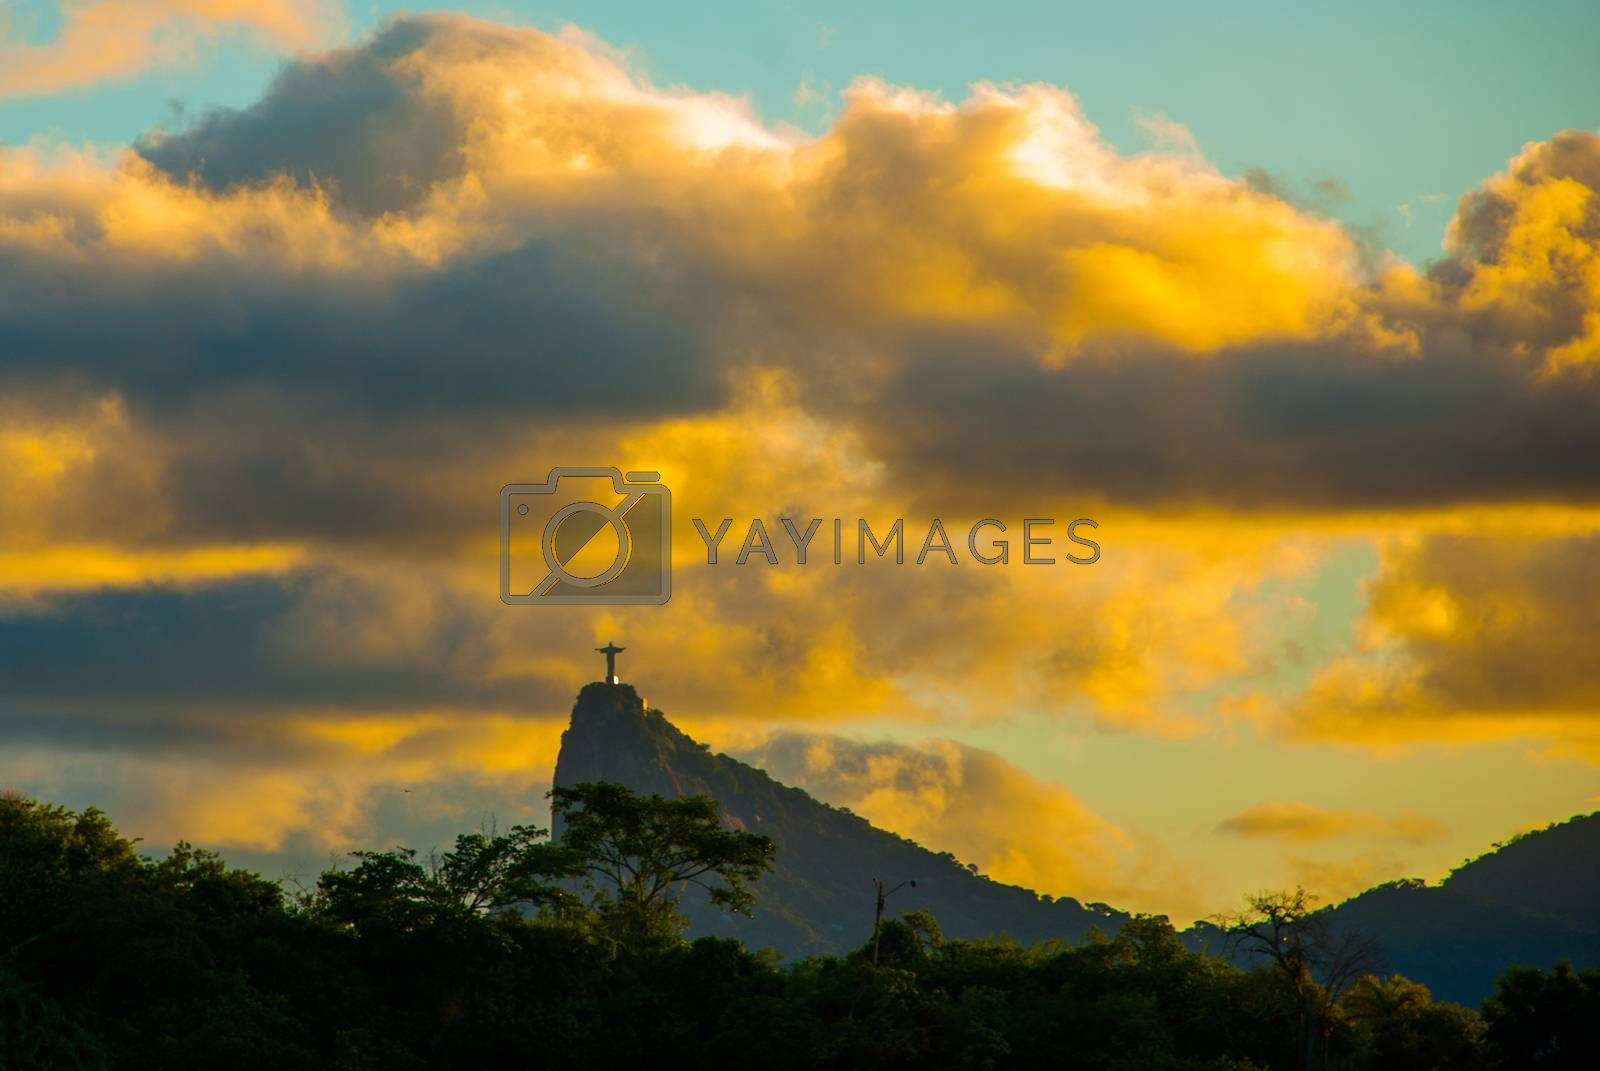 RIO DE JANEIRO, BRAZIL: The famous Rio de Janeiro landmark - Christ the Redeemer statue on Corcovado mountain, shot during beautiful sunset. Beautiful landscape with sunset view.